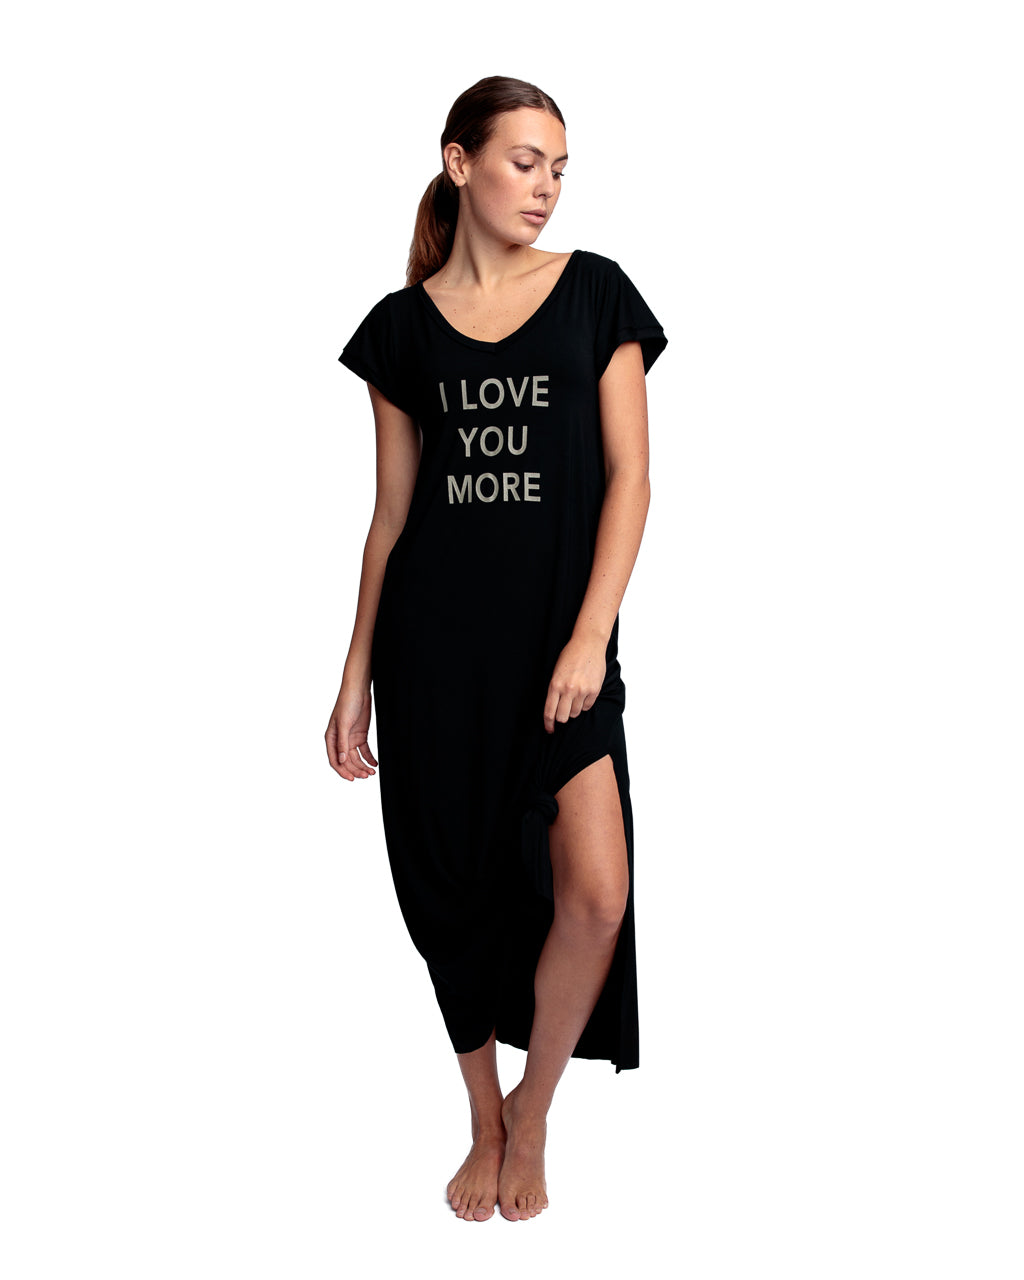 I LOVE YOU MORE T-shirt Dress